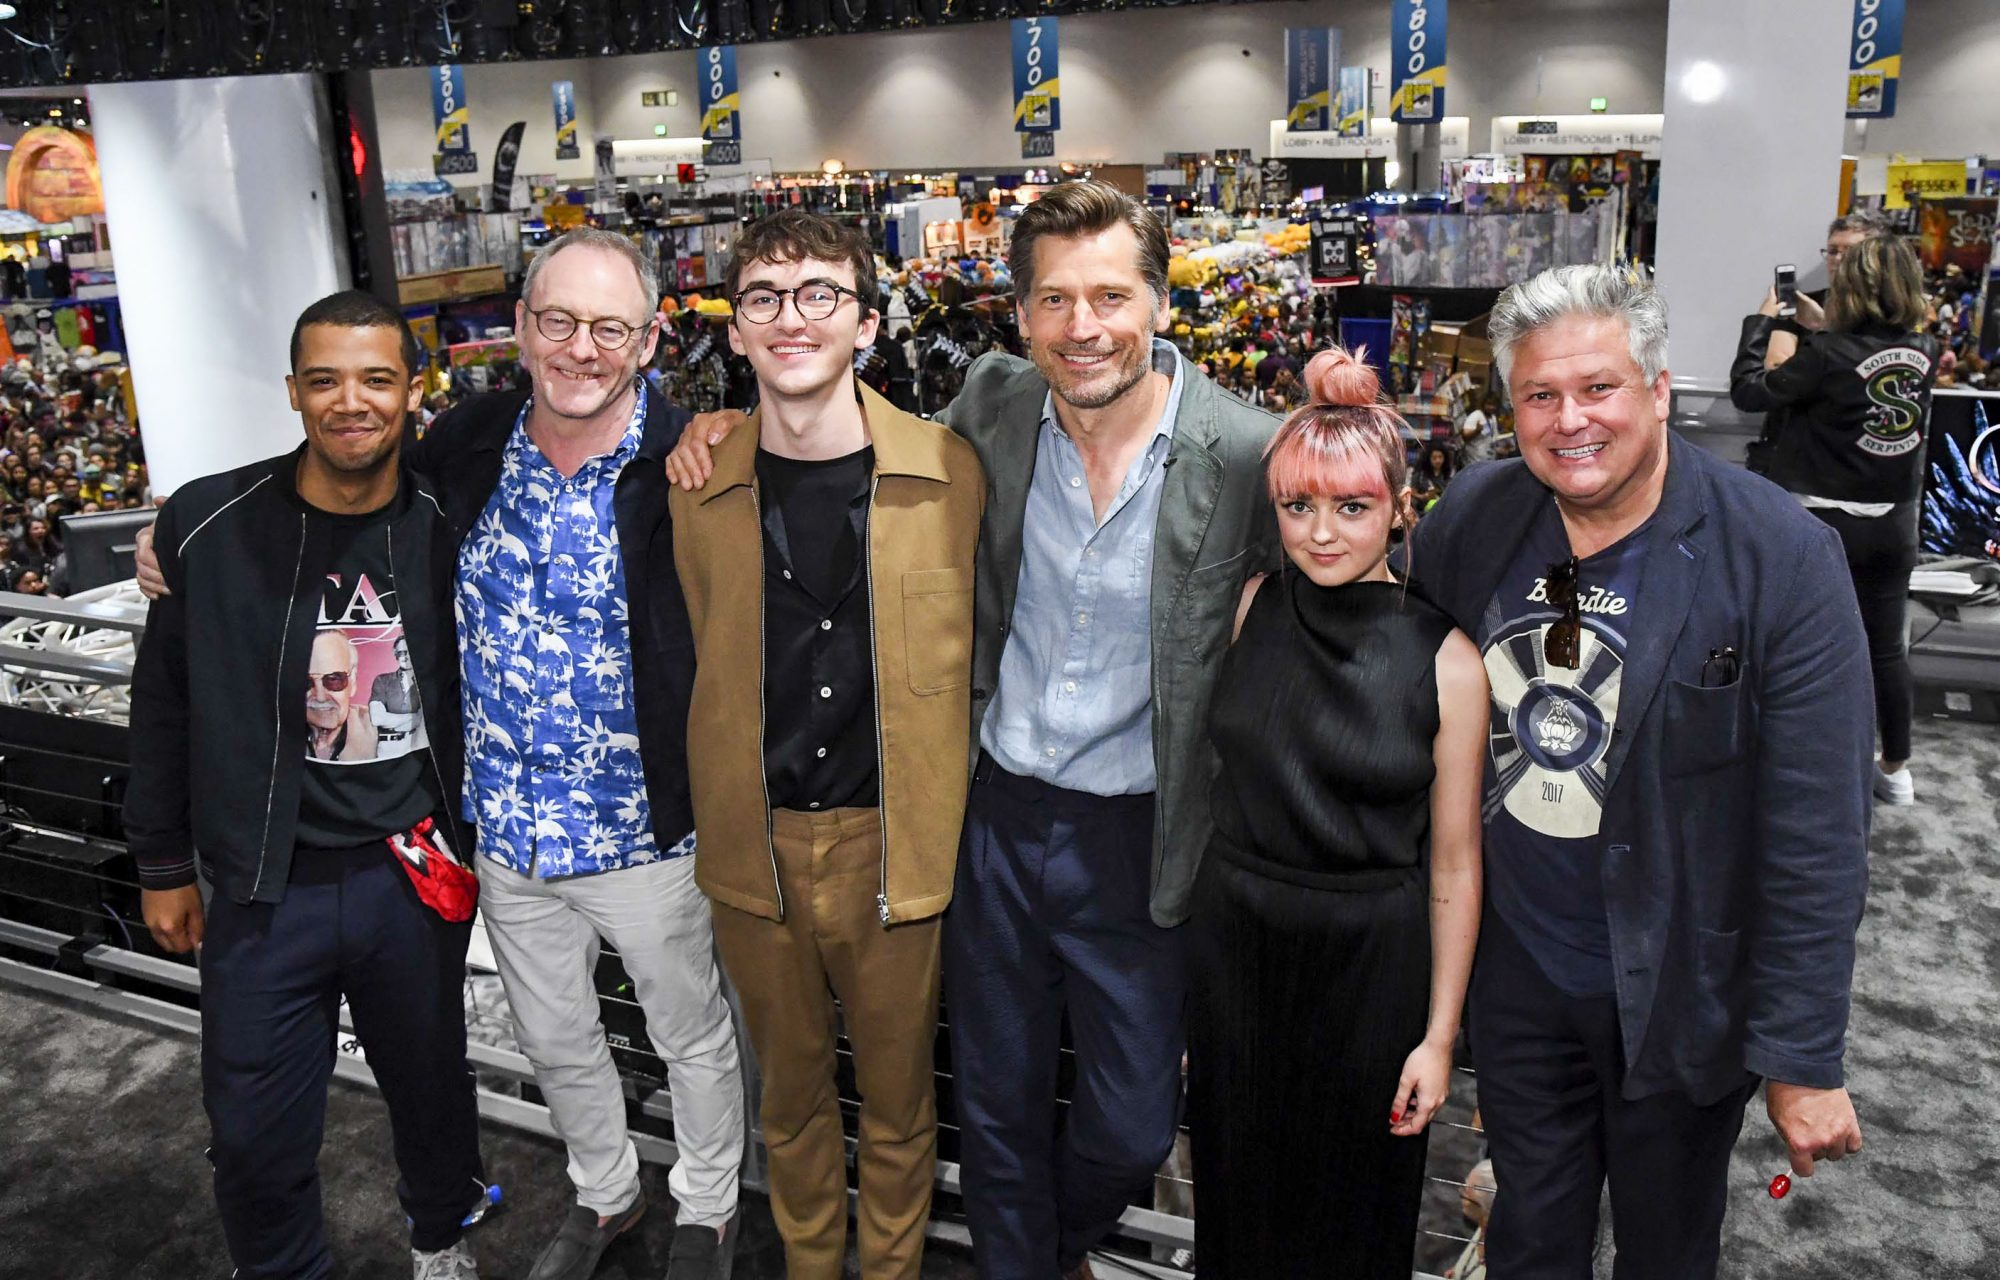 """SAN DIEGO, CALIFORNIA - JULY 19: (L-R) Jacob Anderson, Liam Cunningham, Isaac Hempstead, Nikolaj Coster-Waldau, Maisie Williams, and Conleth Hill at """"Game Of Thrones"""" Comic Con Autograph Signing 2019 on July 19, 2019 in San Diego, California. (Photo by Jeff Kravitz/FilmMagic for HBO)"""